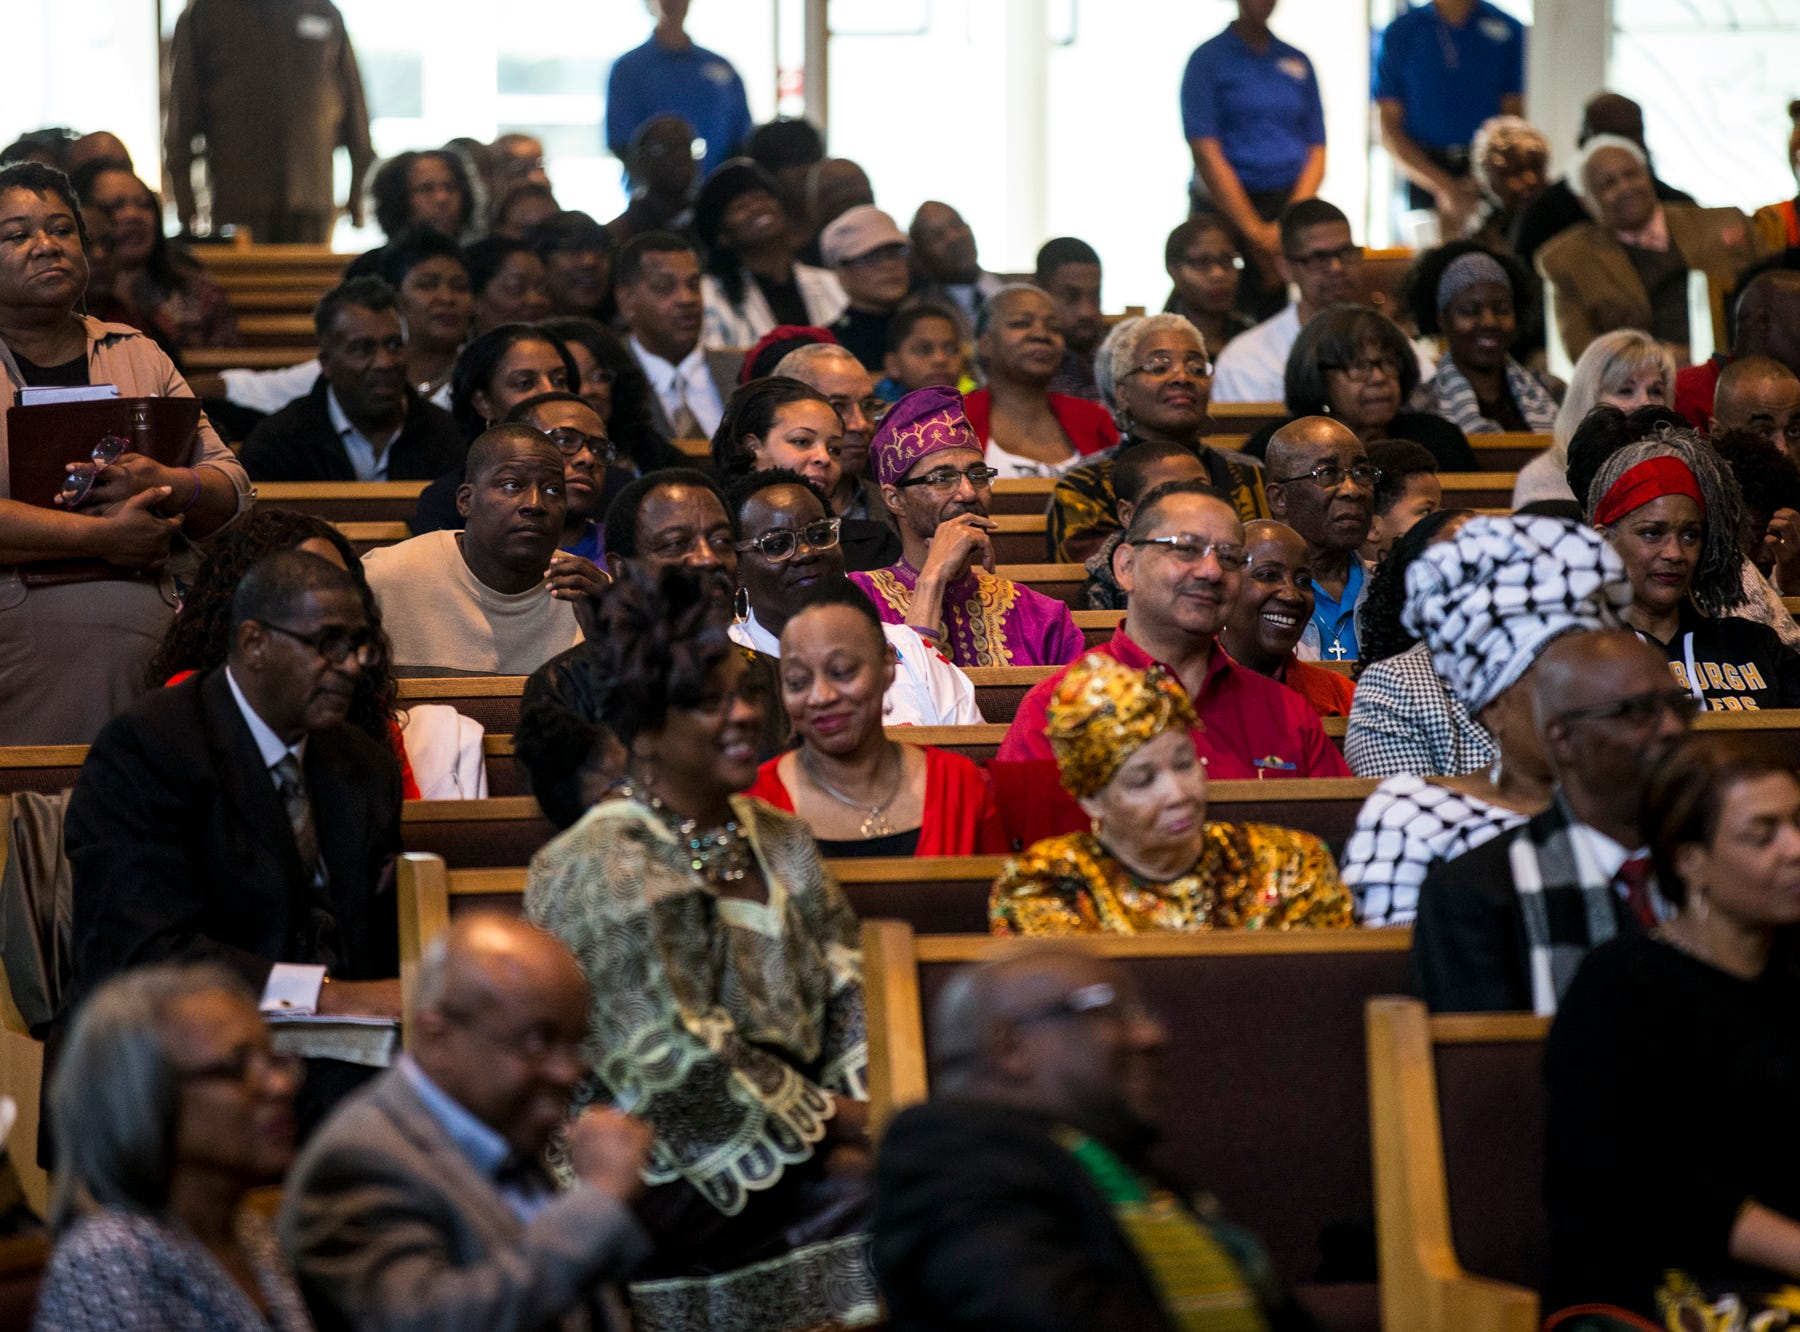 Congregants listen during the 7:30 a.m. service on Feb. 24, 2019, at Pilgrim Rest Baptist Church in Phoenix. Pastor Terry Mackey was appointed to replace the late Bishop Alexis Thomas.